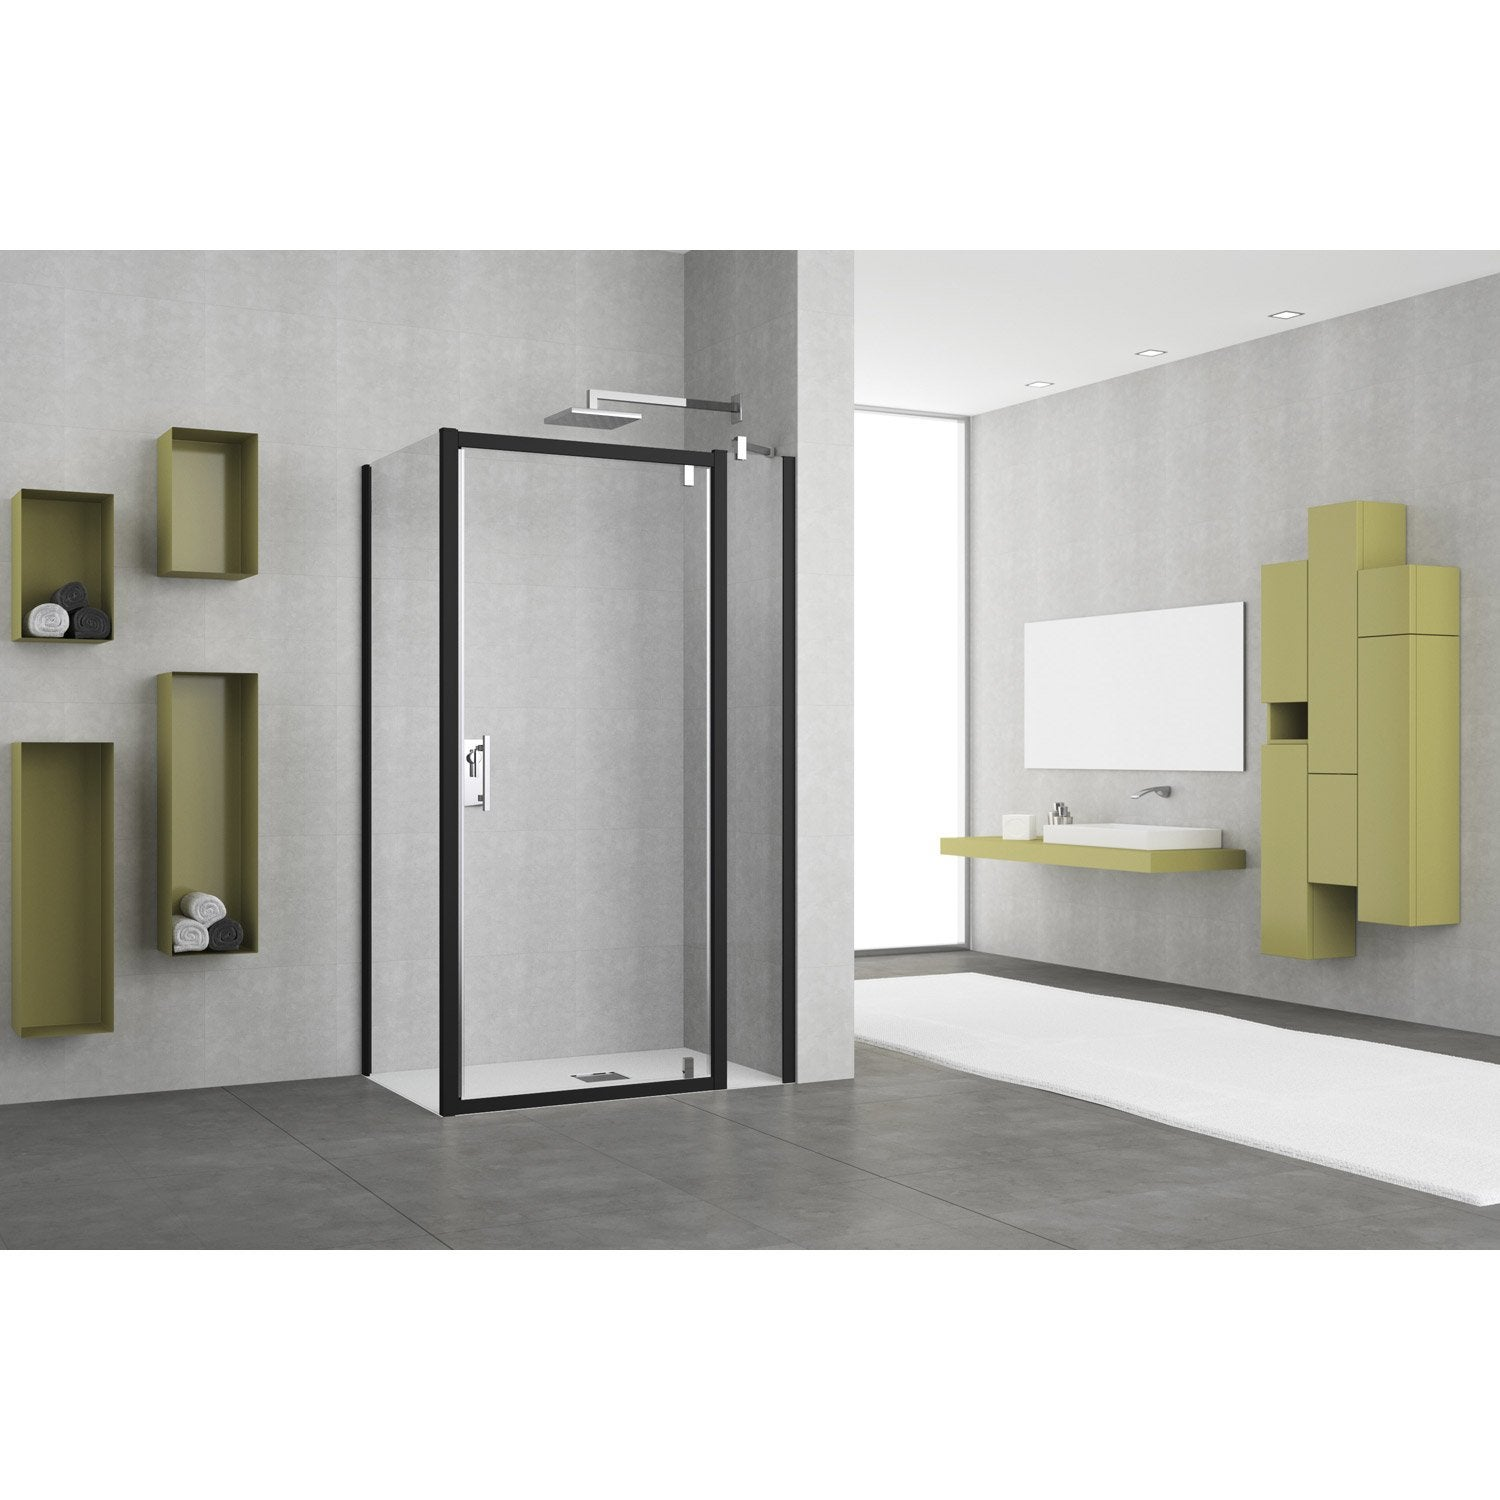 porte de douche pivotante 84 90 cm profil noir elyt leroy merlin. Black Bedroom Furniture Sets. Home Design Ideas